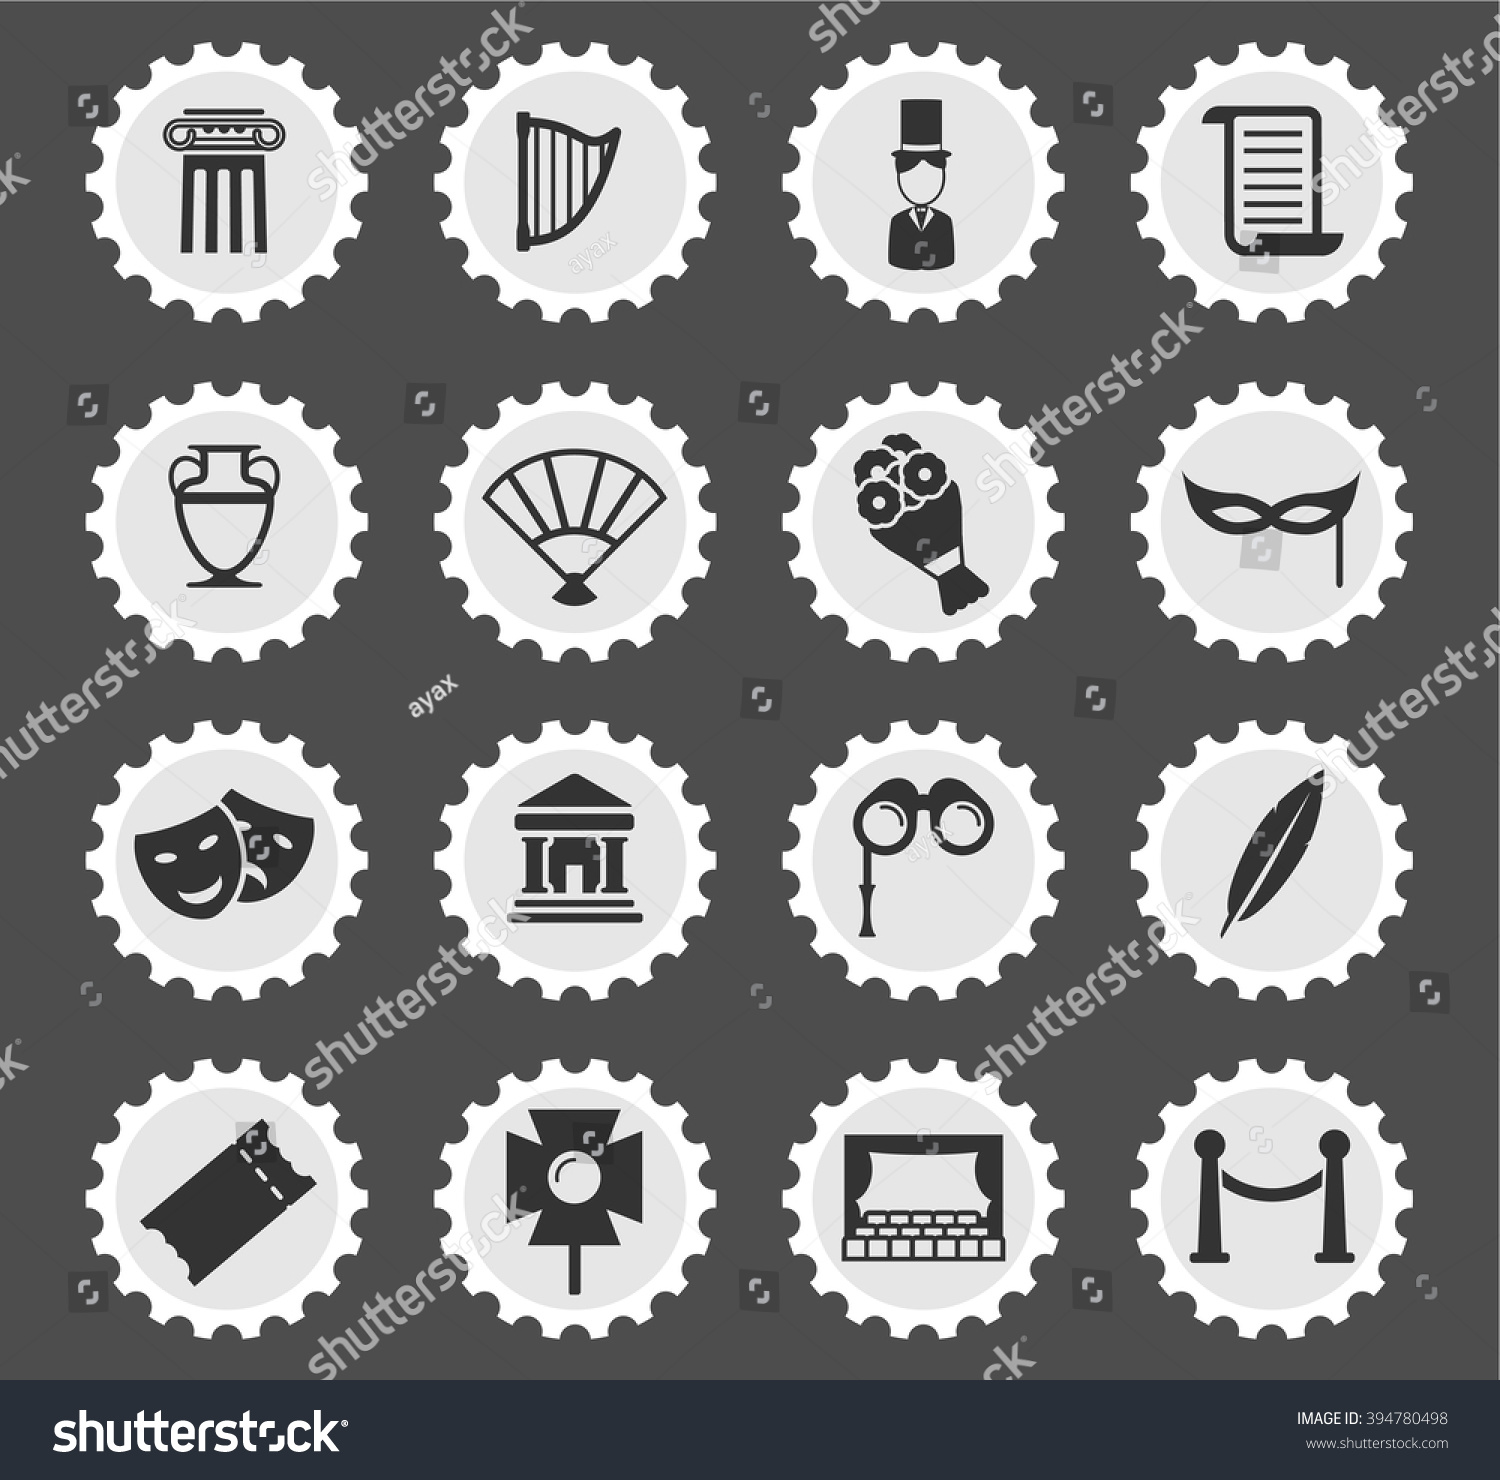 Symbol for theatre images symbol and sign ideas theatre simply symbols web user interface stock vector 394780498 theatre simply symbols for web and user buycottarizona